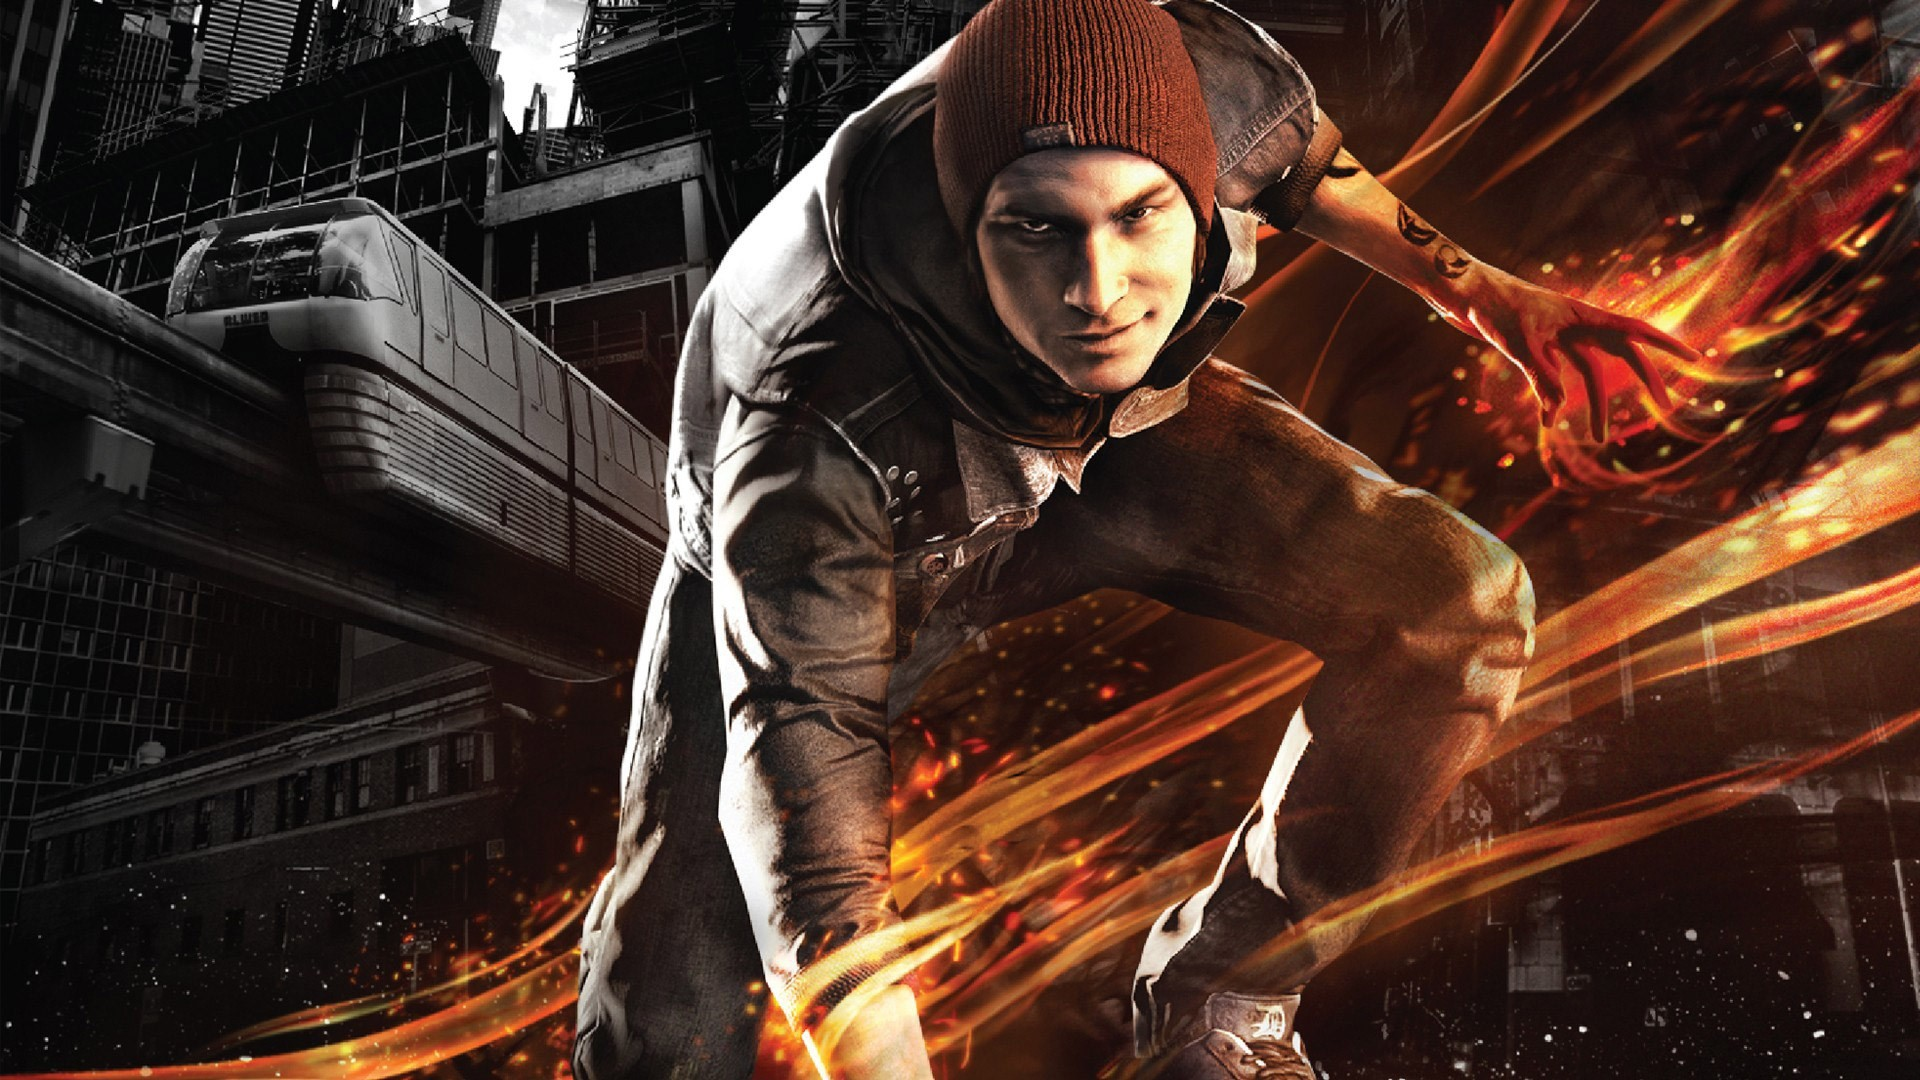 1920x1080 infamous second son widescreen retina imac